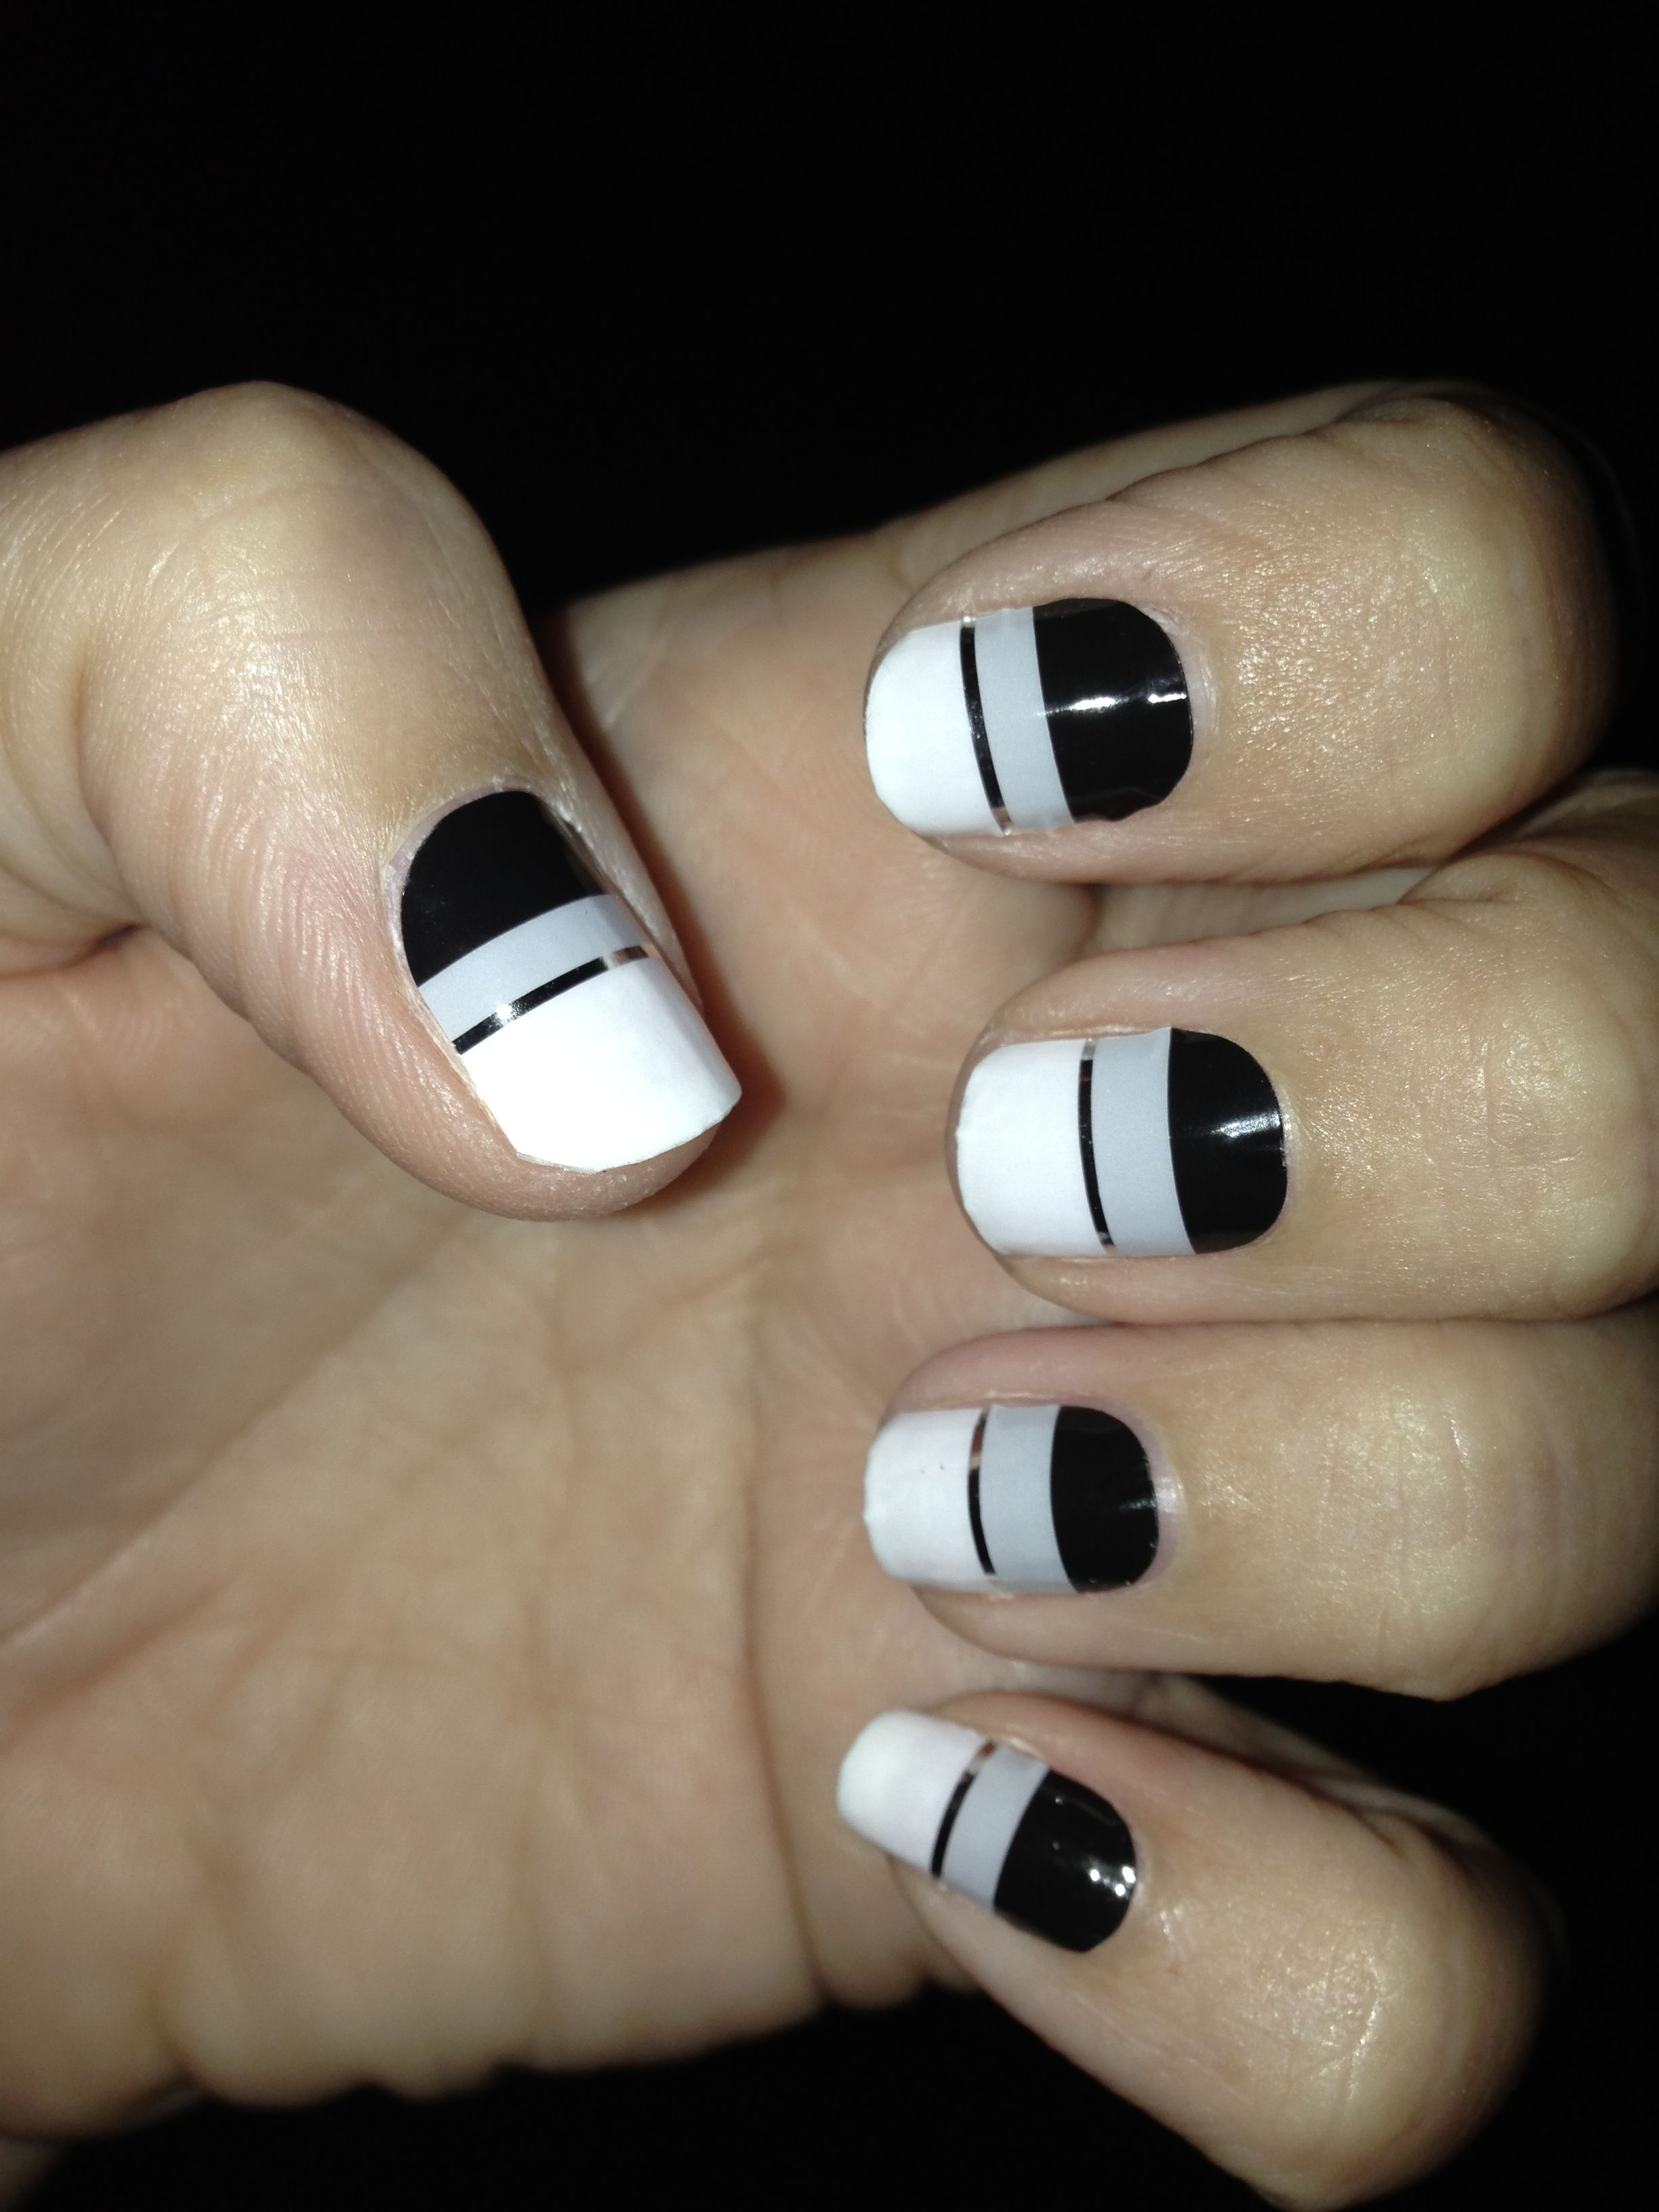 Jamberry Nail Shields are the newest way to accessorize your fingers ...